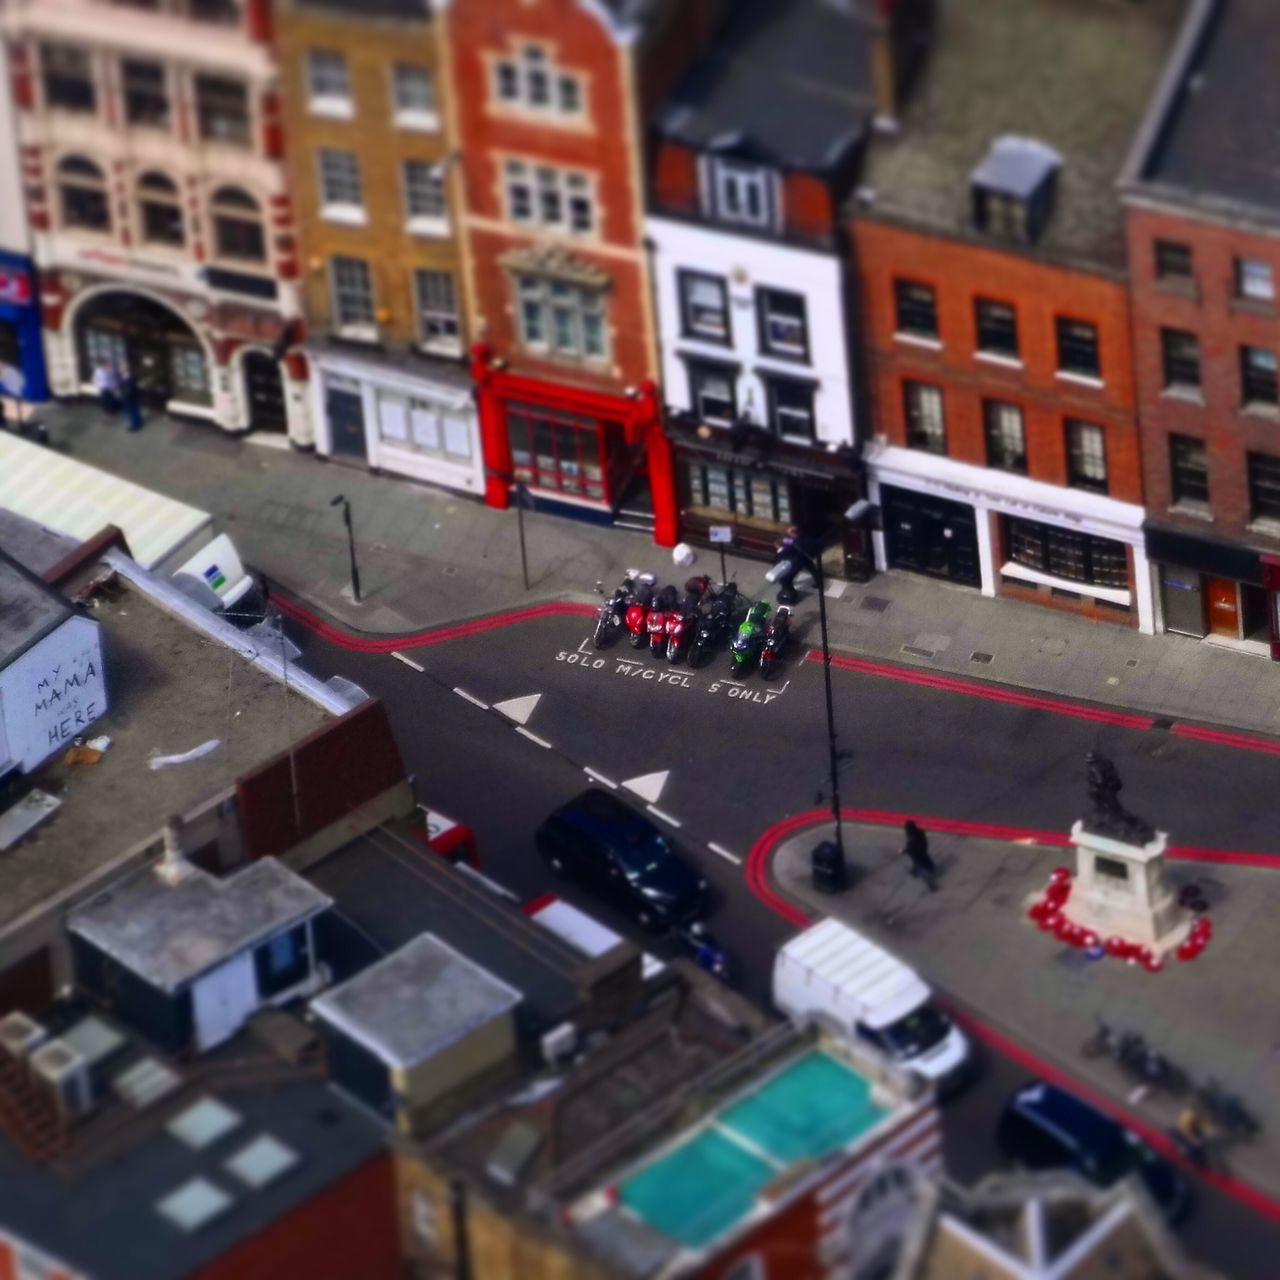 architecture, city, building exterior, built structure, transportation, street, high angle view, land vehicle, large group of people, day, outdoors, red, road, men, tilt-shift, people